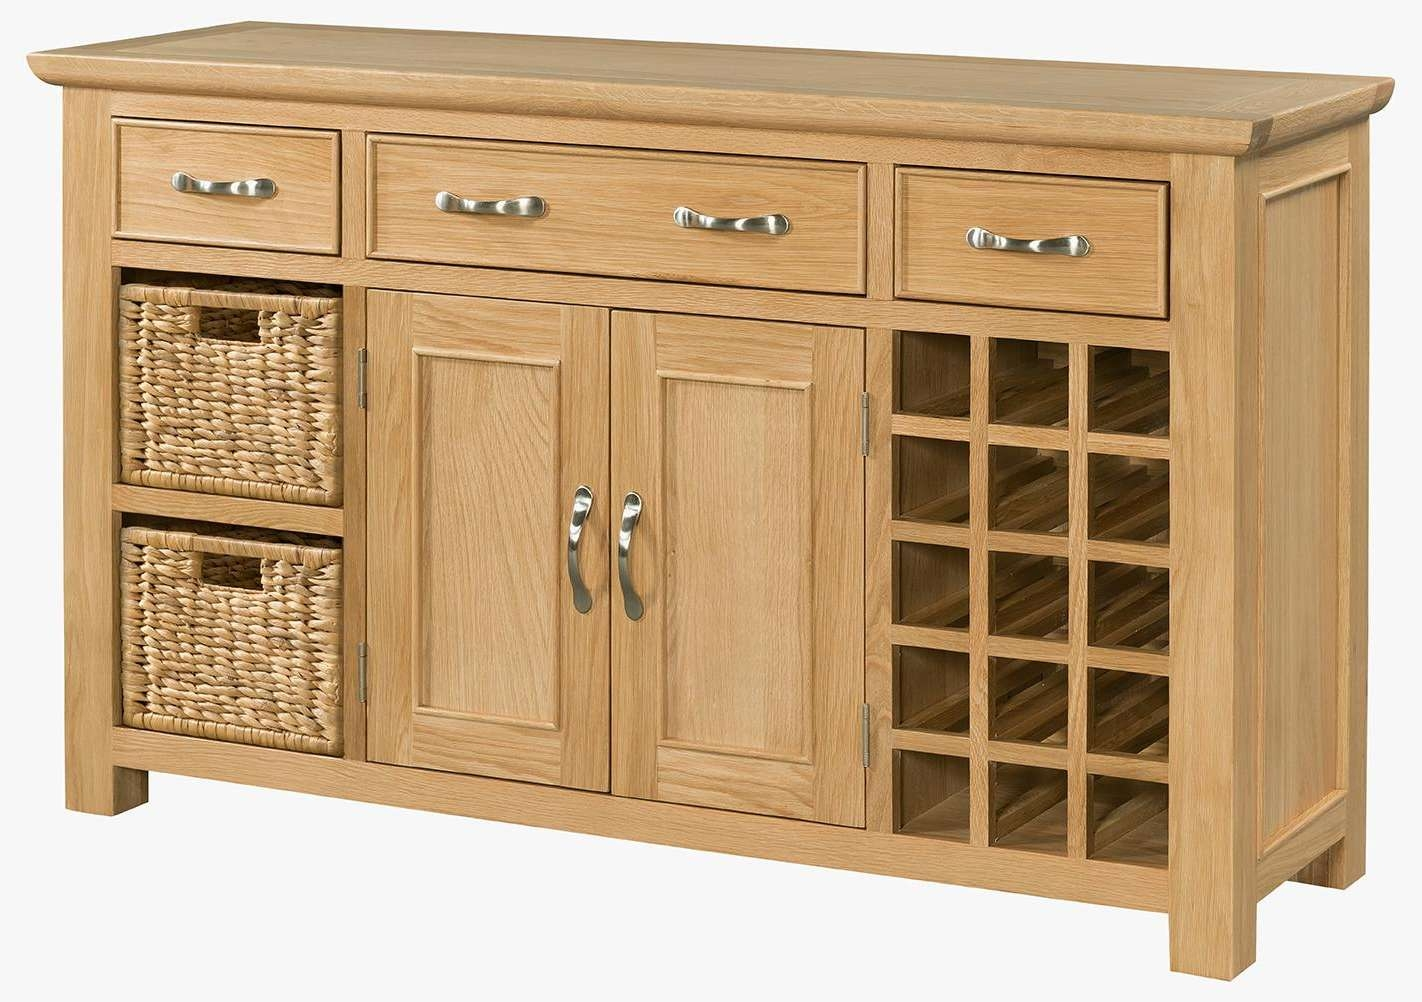 Oak Large Sideboard With Wine Rack (Sie054) – Solid Wood & Painted Within Sideboards With Wine Rack (View 9 of 20)